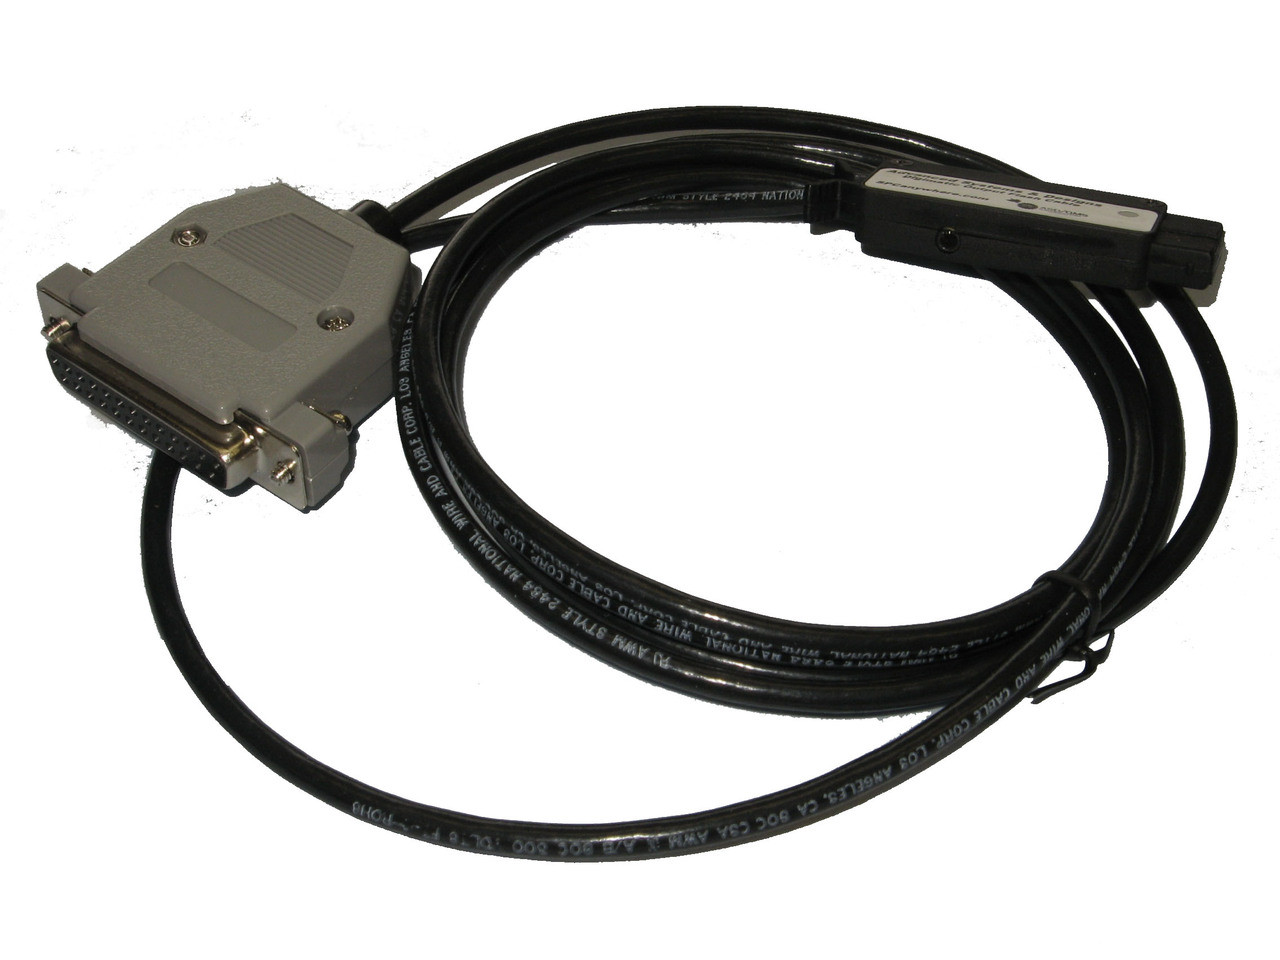 ASDQMS Digimatic Output Gage Cable for Panametrics Magna-Mike Model 8000 Thickness Gauge